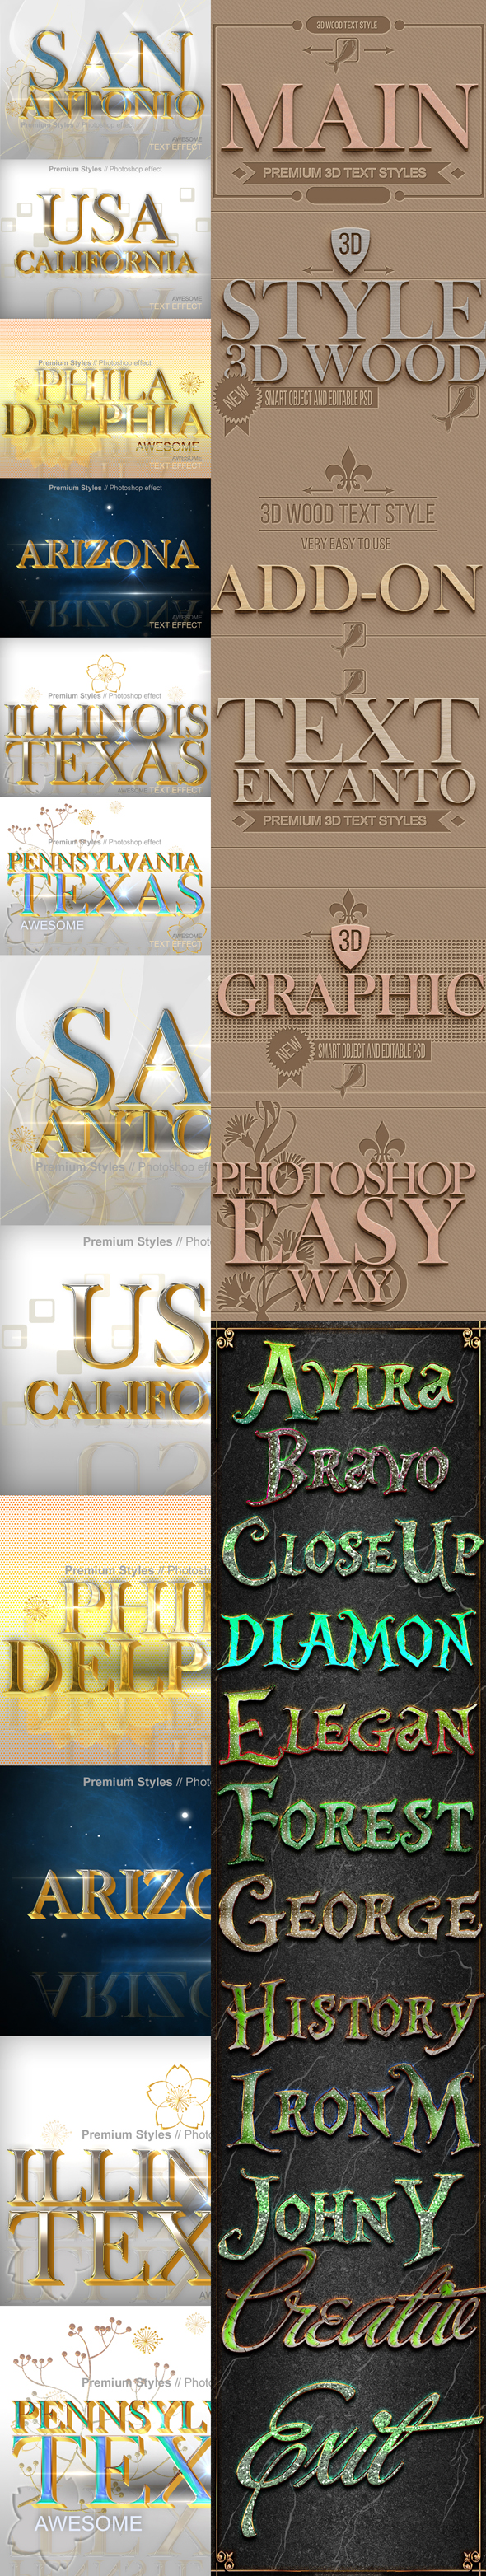 GraphicRiver 30 Bundle 3D Text Styles D9-D11 20487886